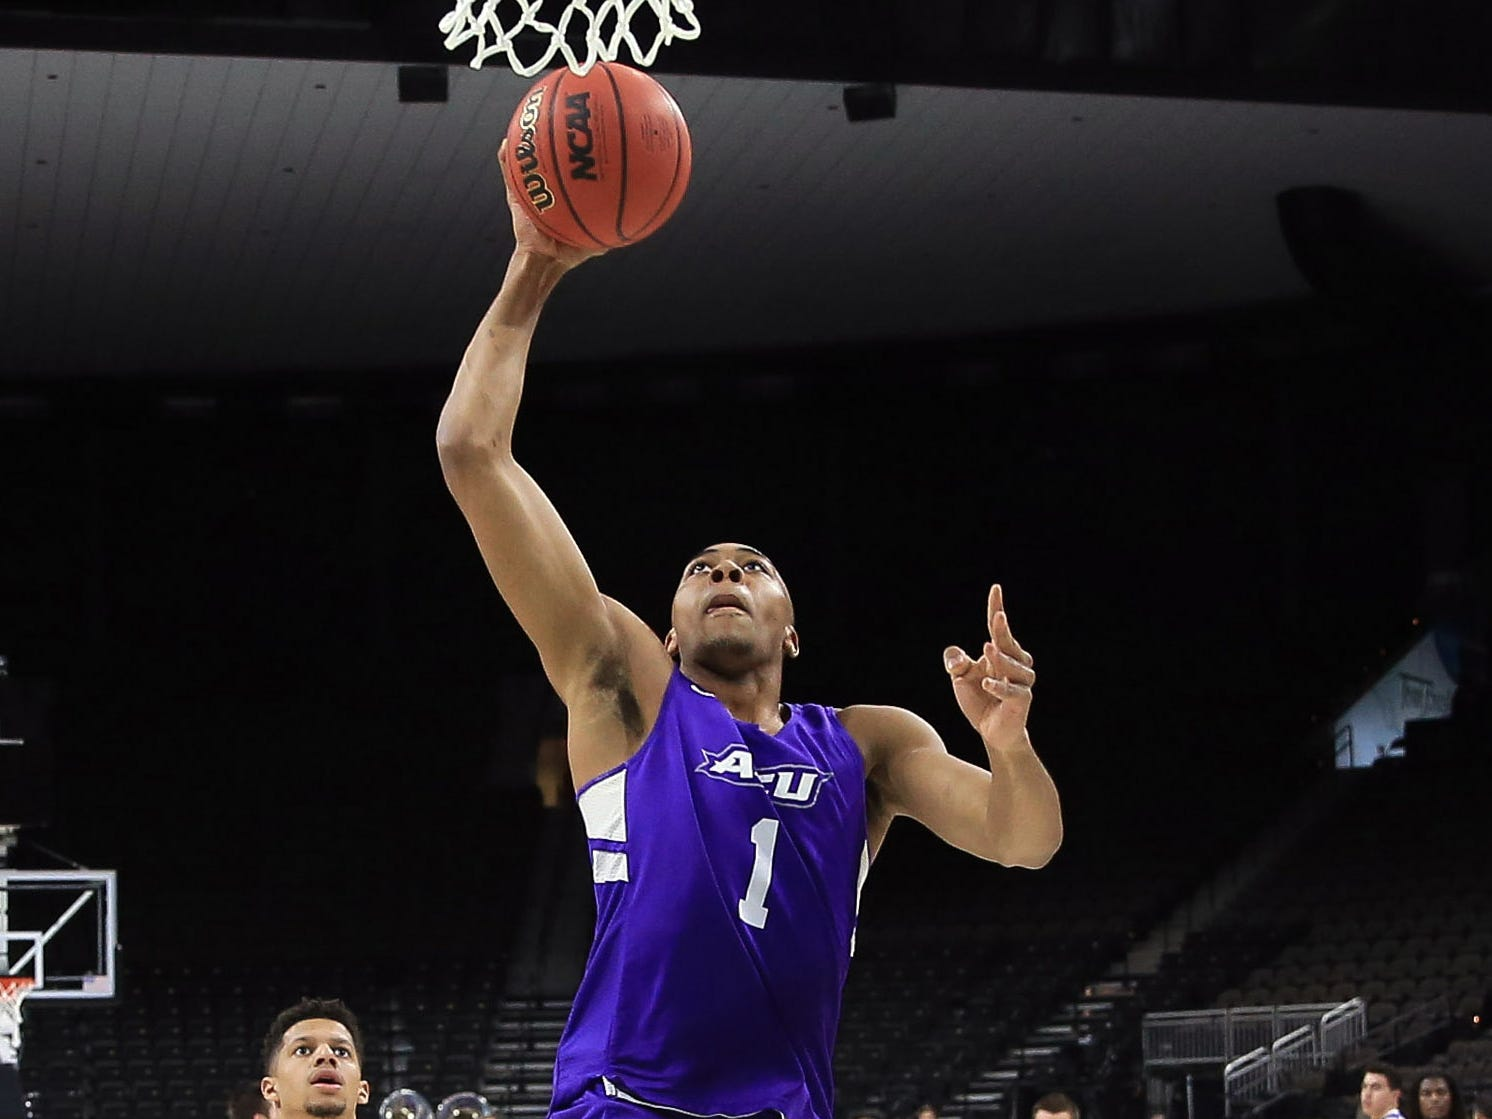 Mar 20, 2019; Jacksonville, FL, USA; Abilene Christian Wildcats forward Jaren Lewis (1) during practice day before the first round of the 2019 NCAA Tournament at Jacksonville Veterans Memorial Arena. Mandatory Credit: Matt Stamey-USA TODAY Sports